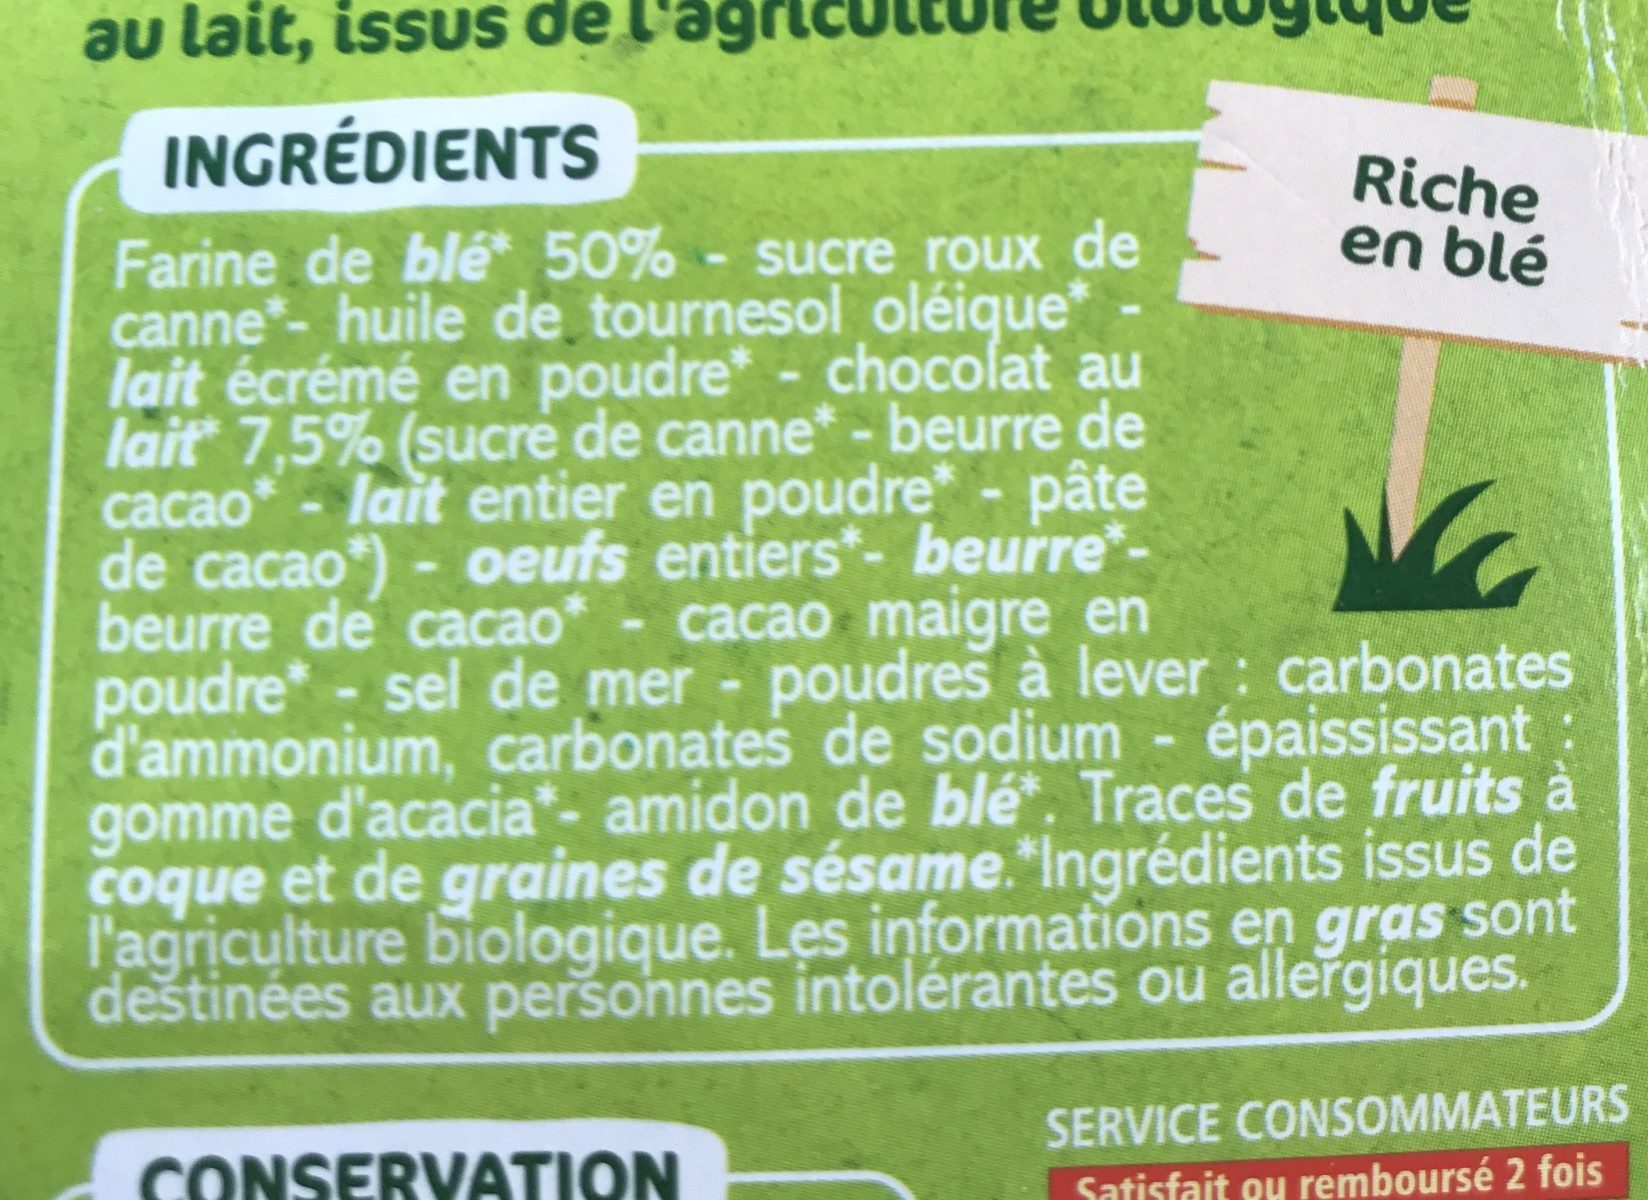 Goûters ronds fourrage chocolat au lait - Ingredients - fr